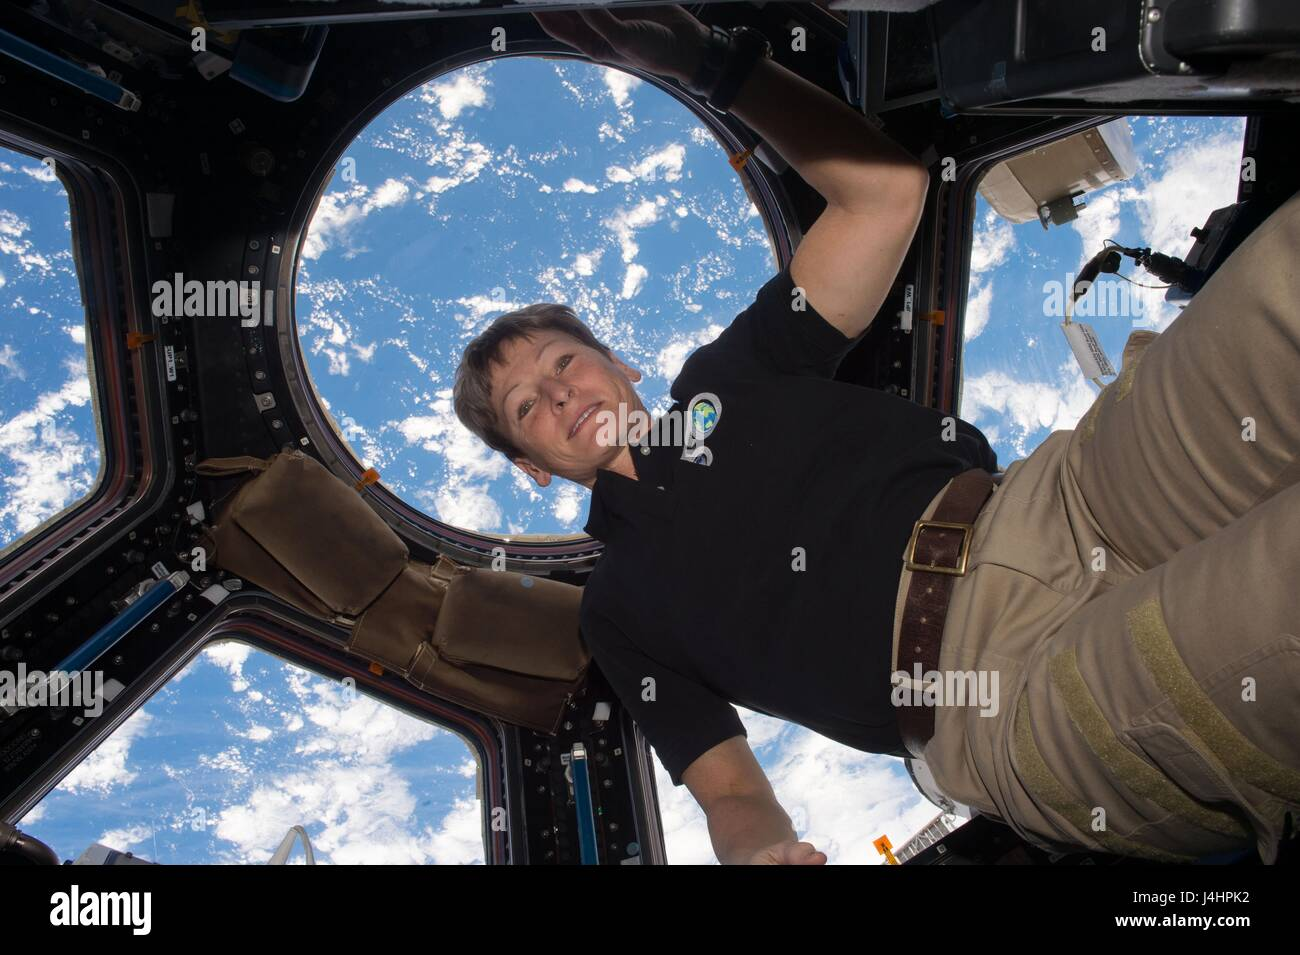 NASA International Space Station Expedition 50 prime crew member astronaut Peggy Whitson floats next to the cupola - Stock Image